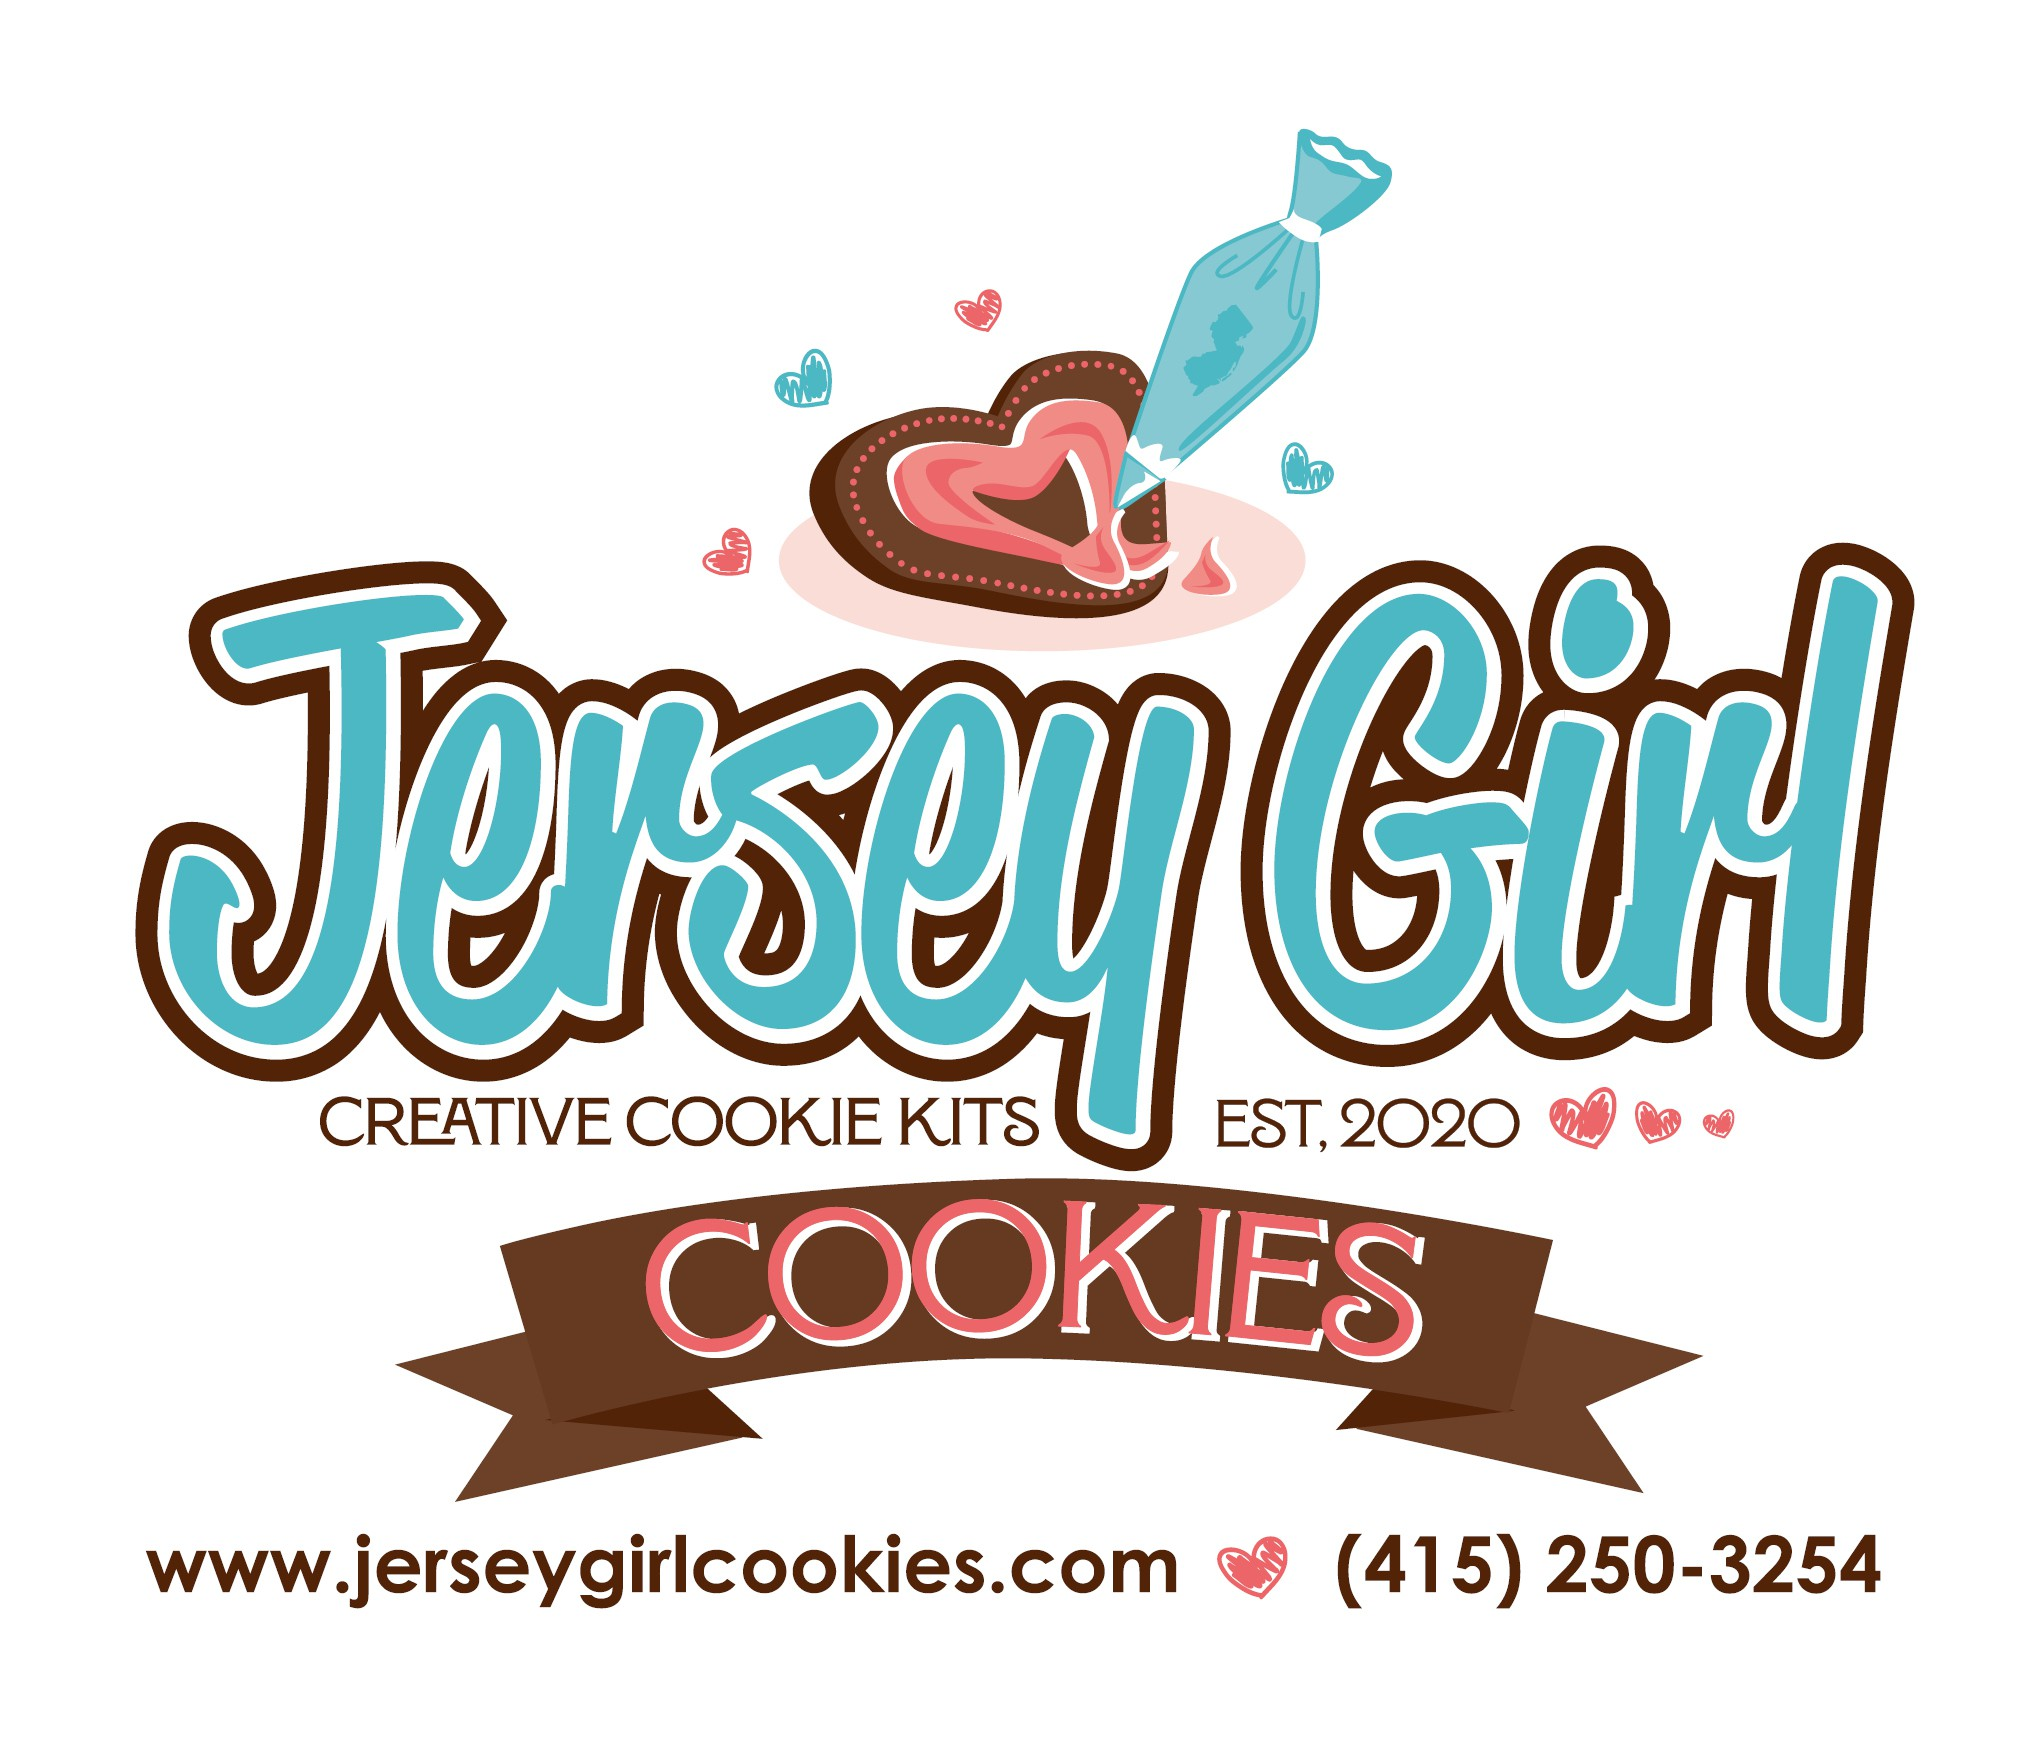 Design a logo for an artisanal cookie decorating business in the Bay Area